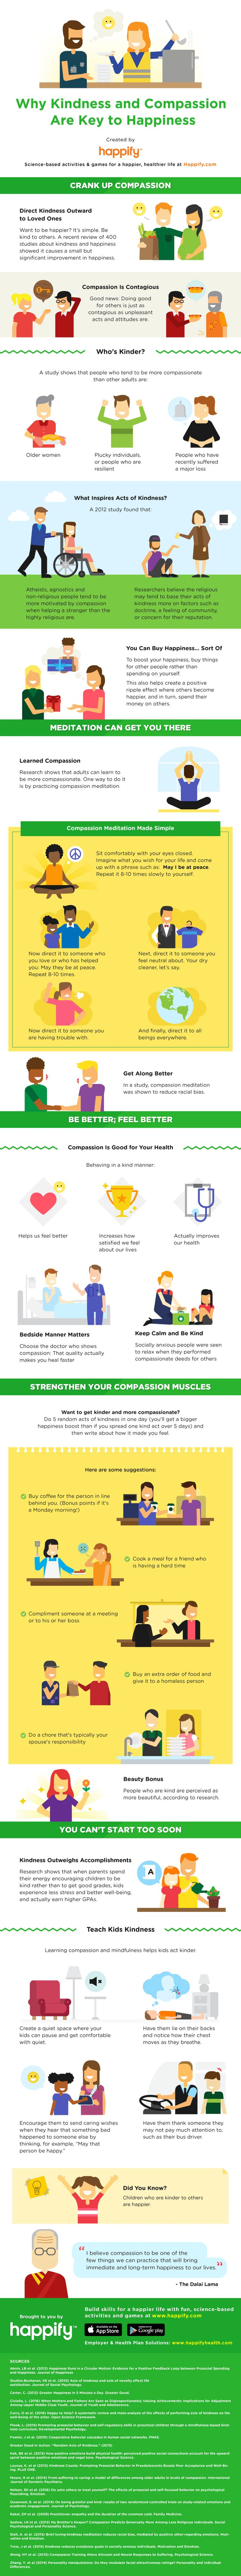 INFOGRAPHIC: Why Compassion Matters